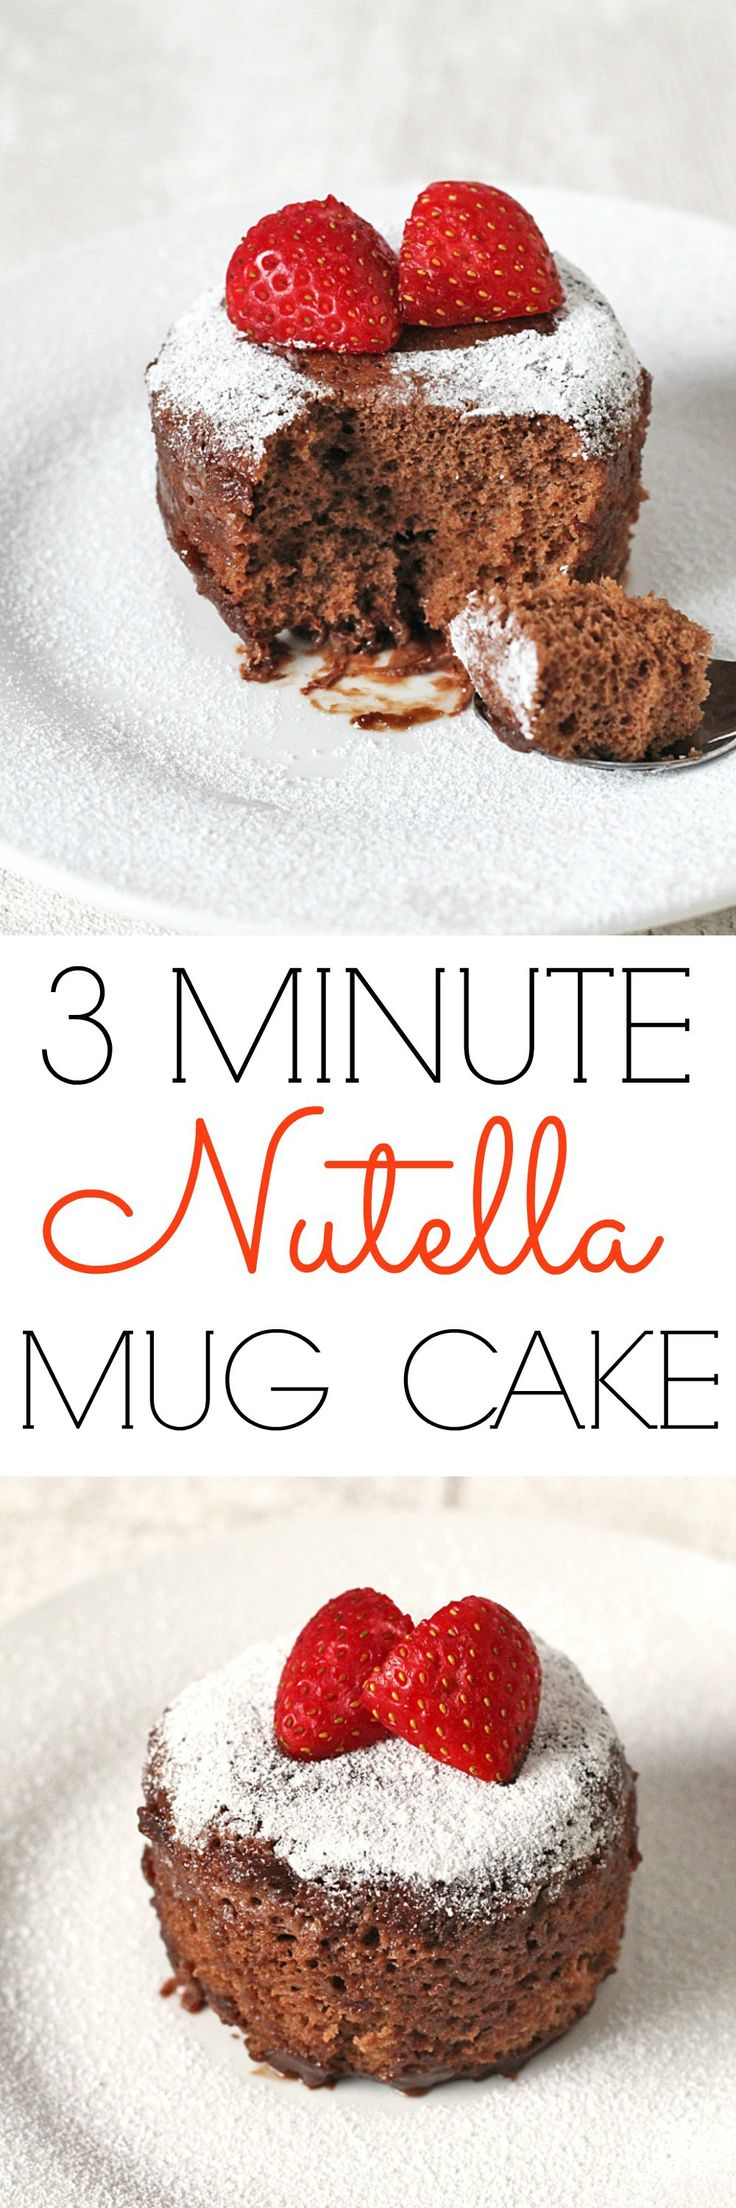 A deliciously gooey chocolate and Nutella microwave mug cake, ready in just 2 minutes.